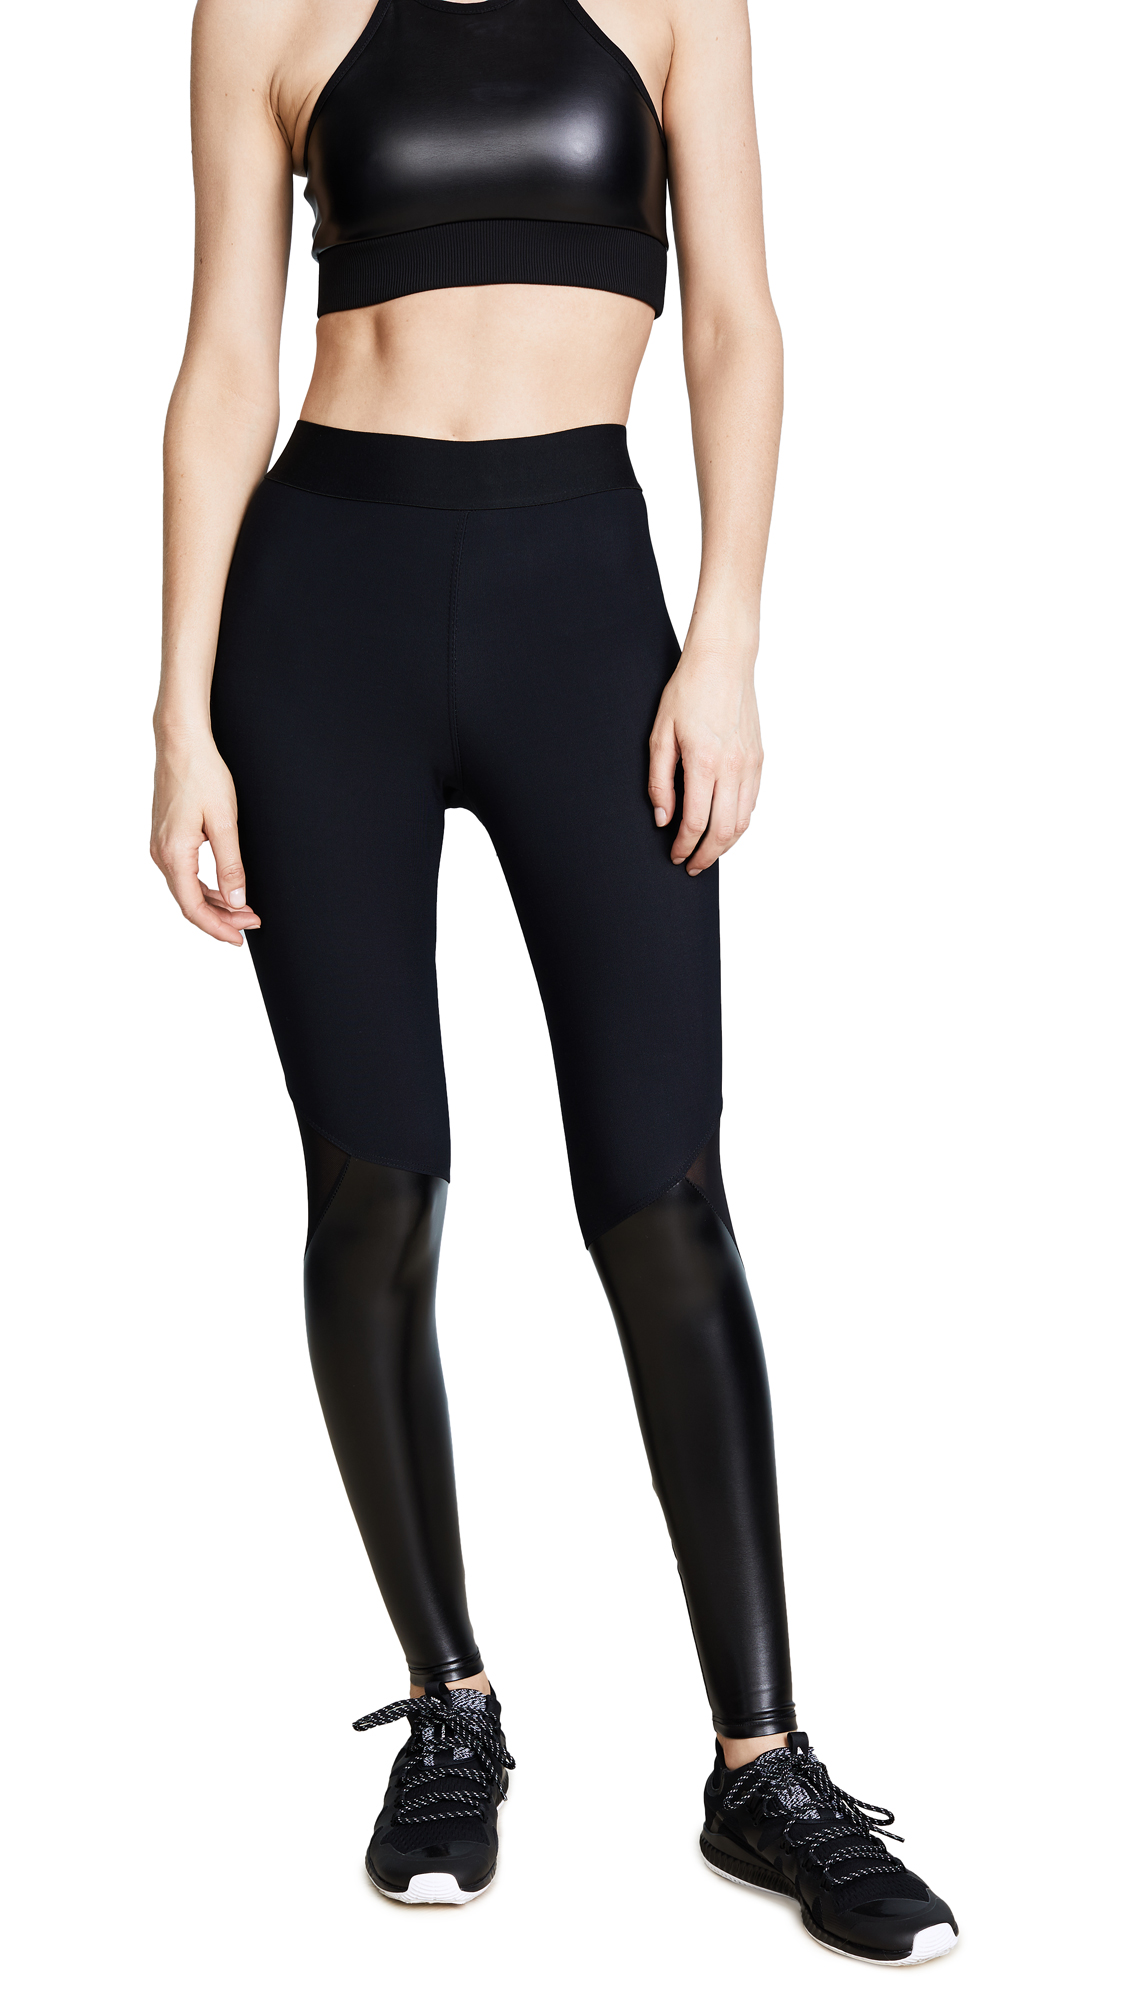 Heroine Sport Matrix Leggings - Black & Matrix